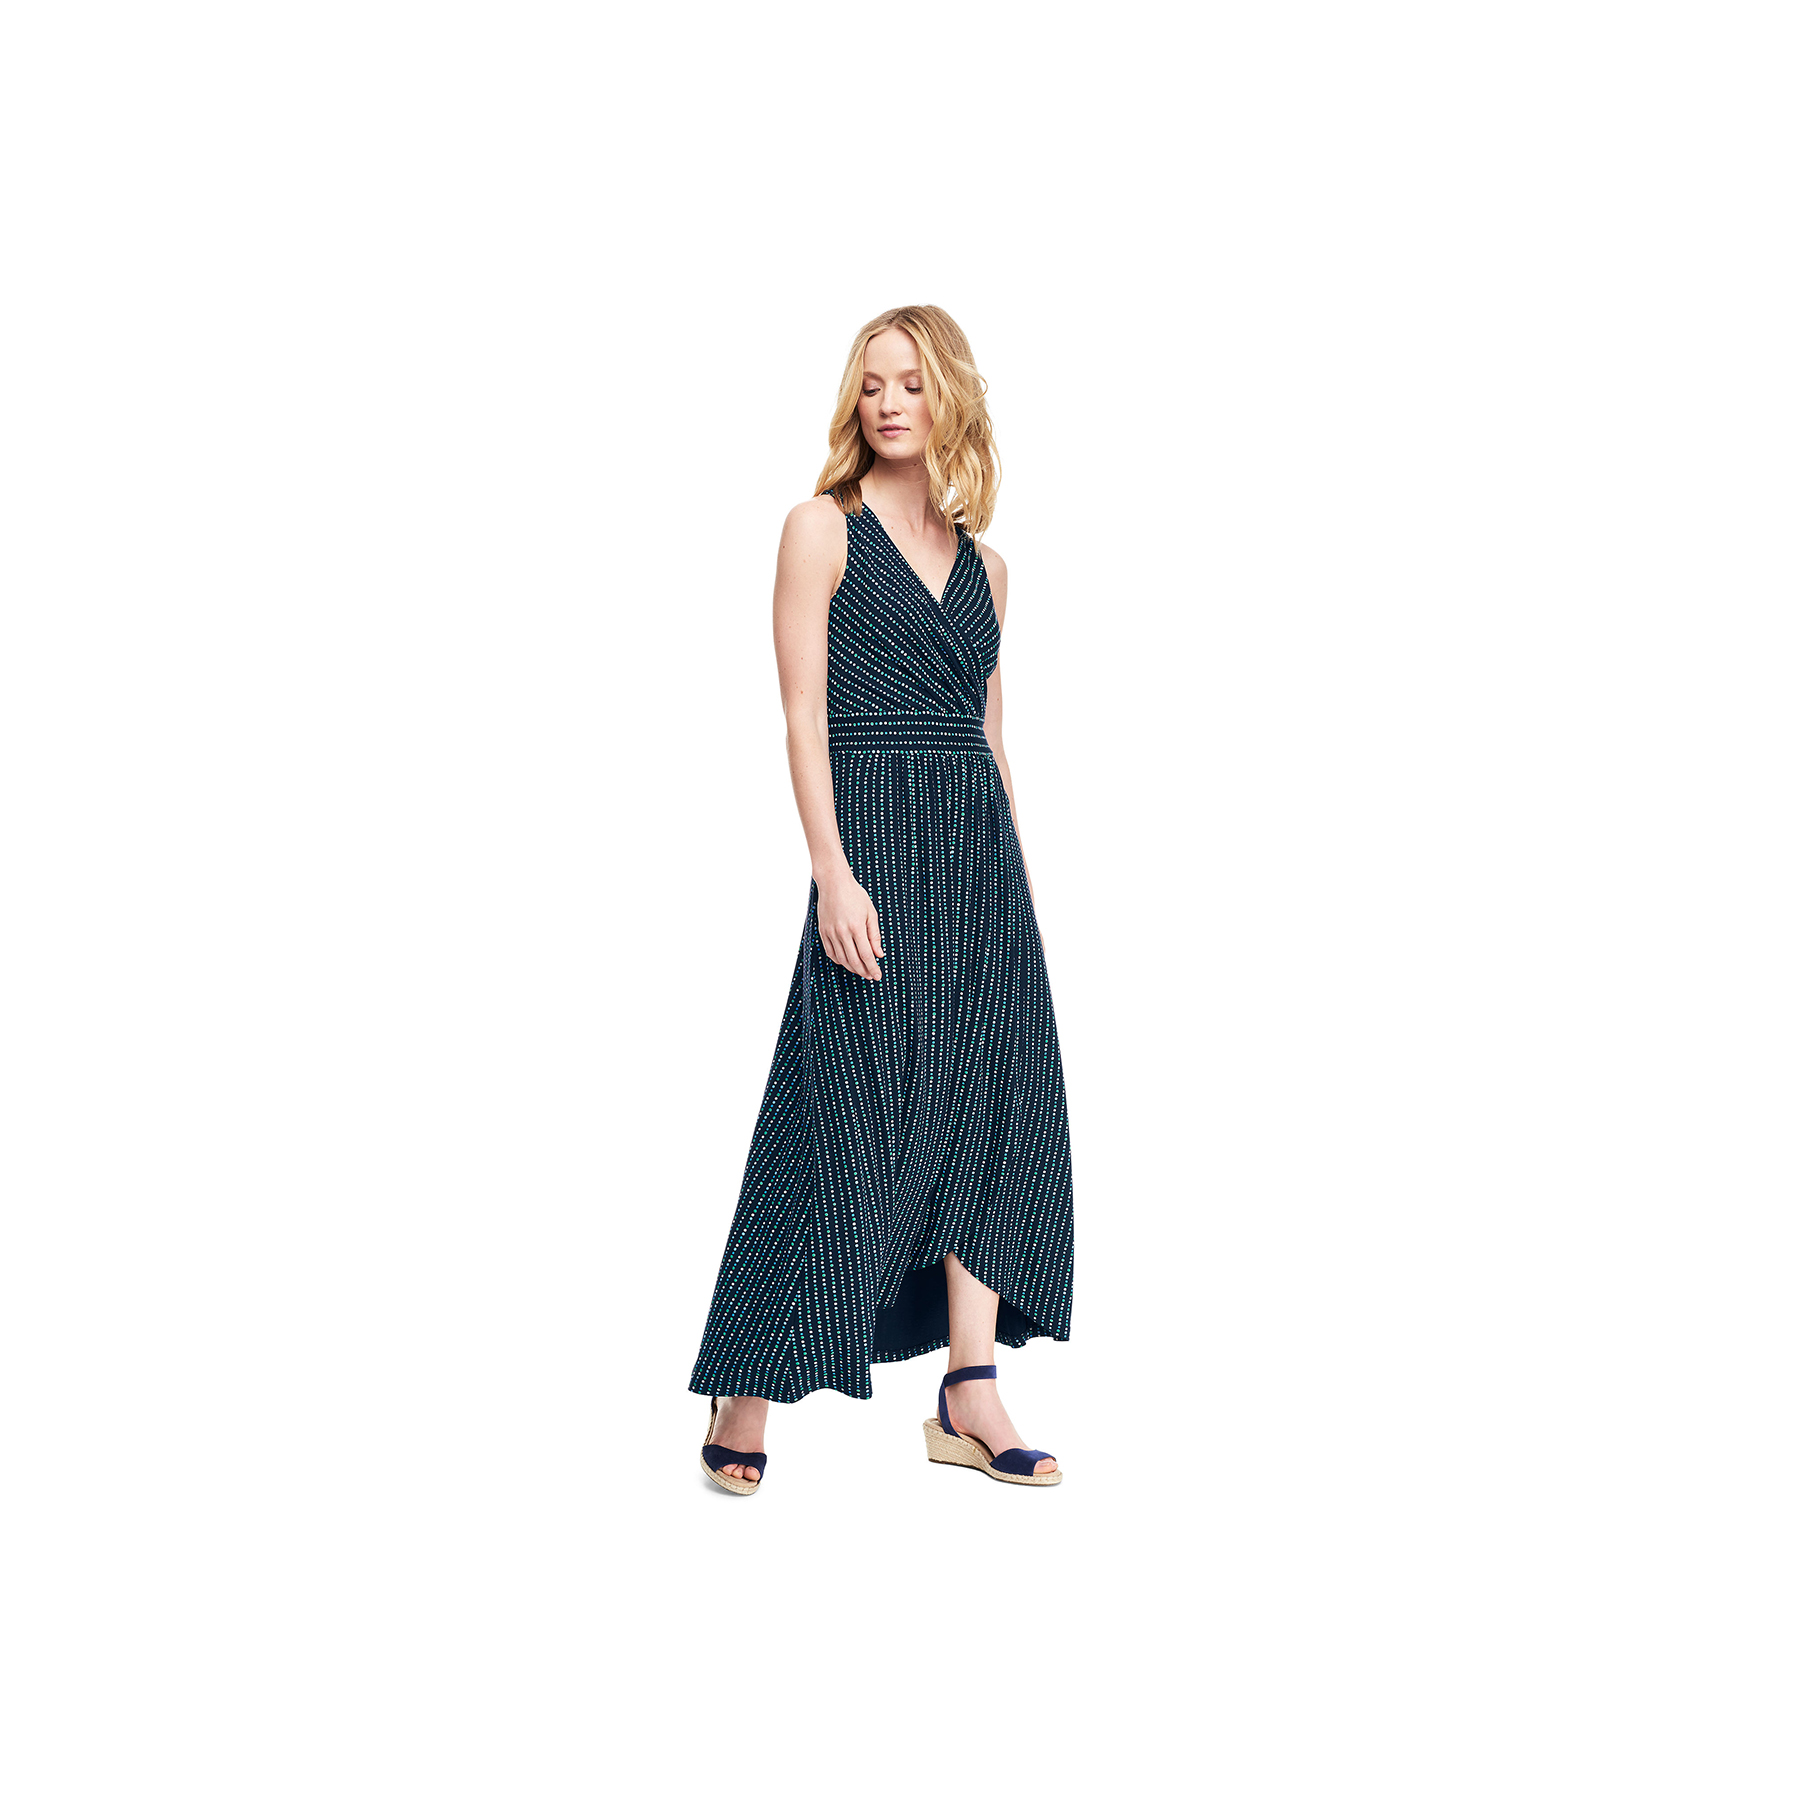 Land's End Sleeveless Fit and Flare Maxi Dress